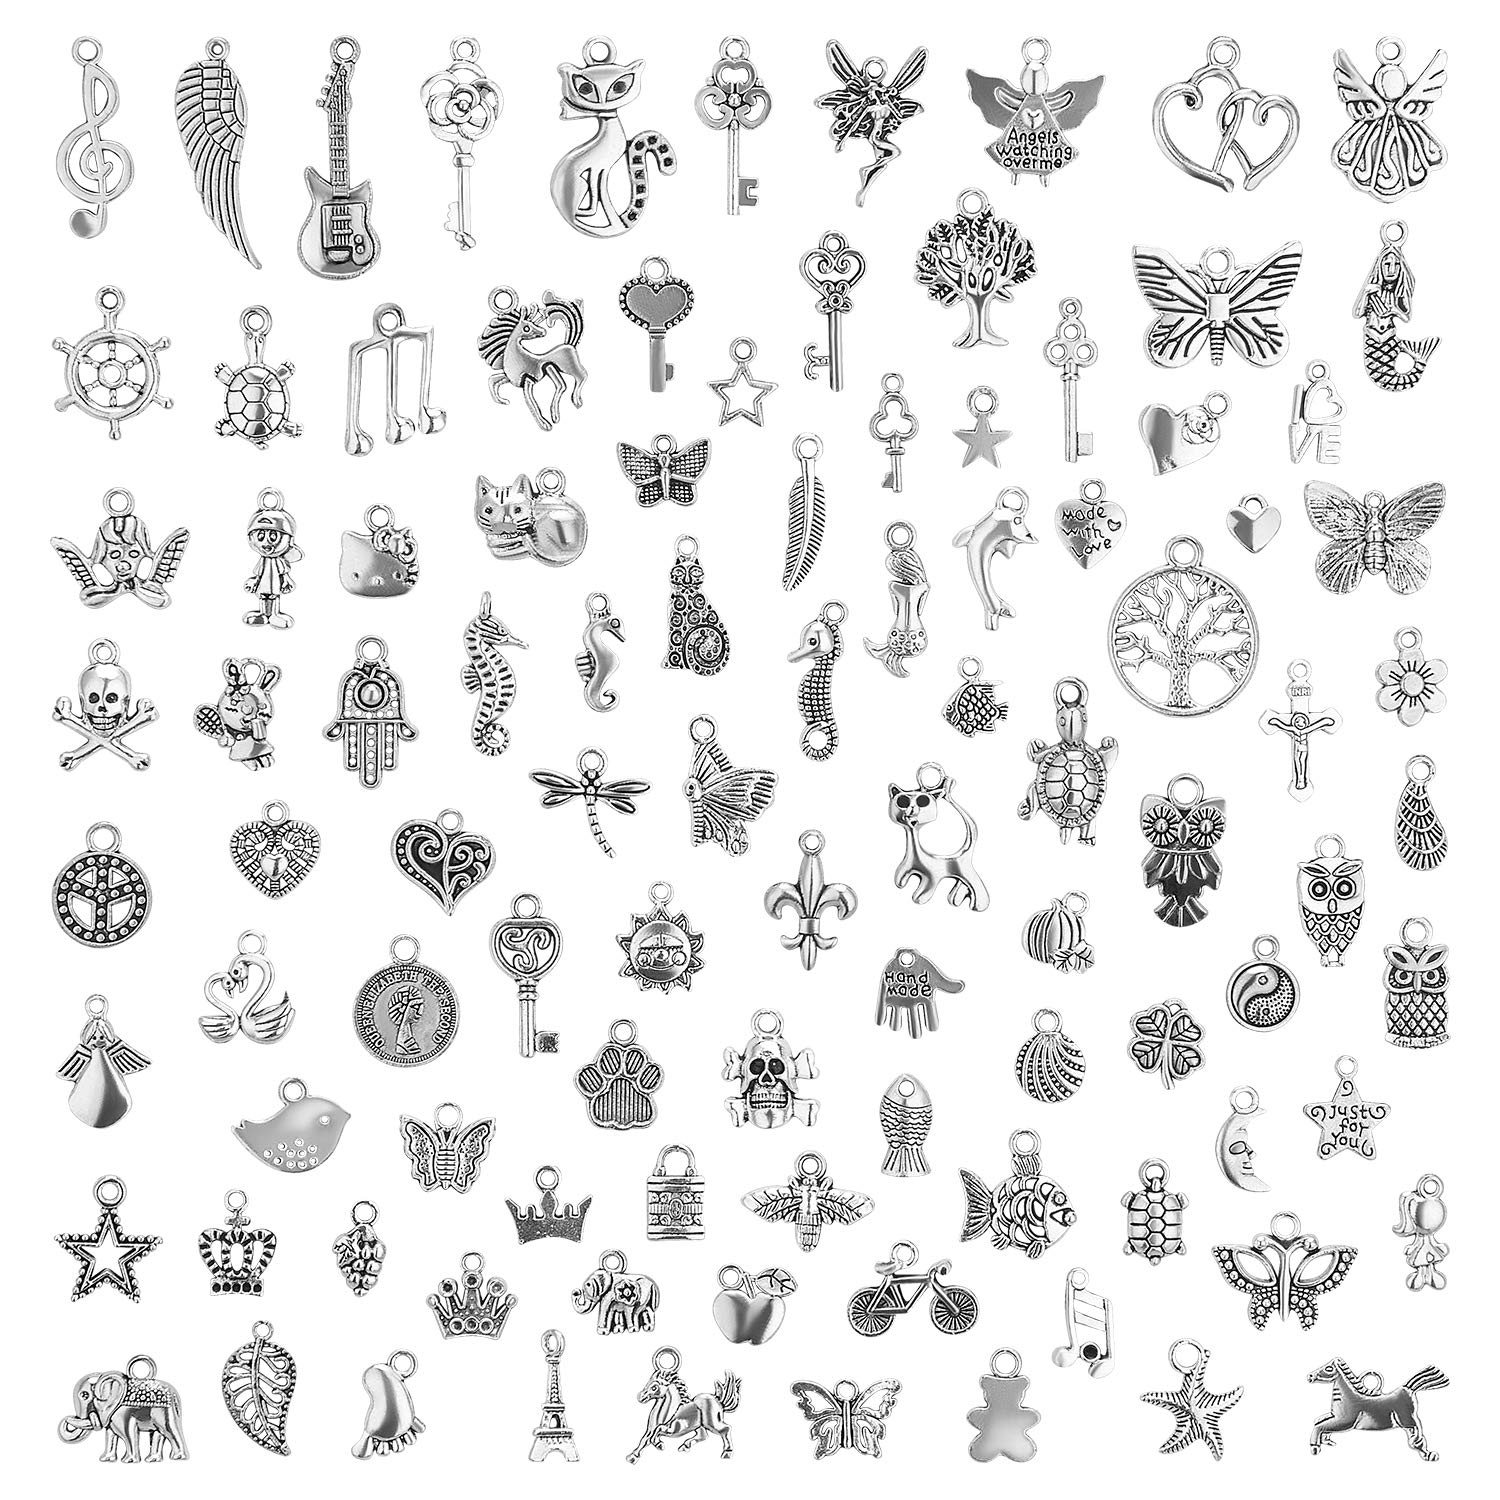 Charms for Jewelry Making 200 Pieces Wholesale Bulk Lots Mixed Smooth Tibetan Silver Charms Pendants for DIY Necklace Bracelet Jewelry Making Crafting